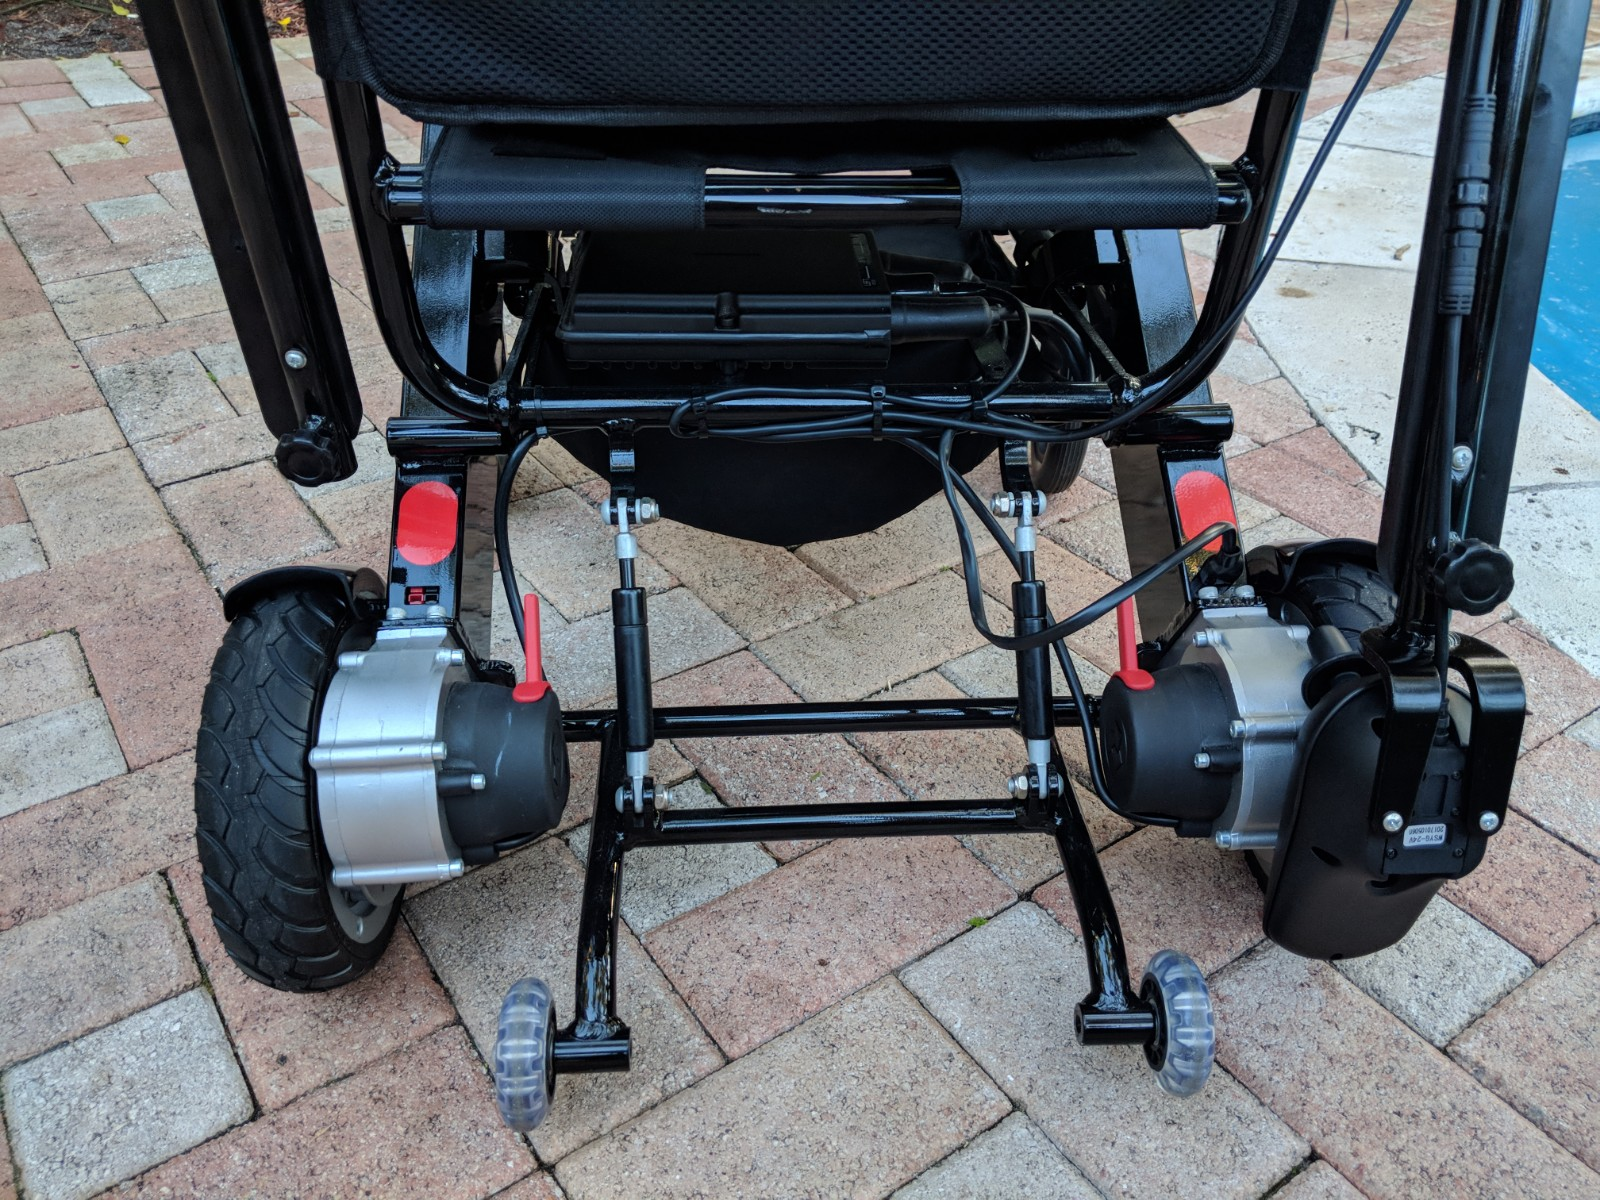 The Air Hawk Folding Electric Wheelchair is equipped with two High-Performance Hub Motors in addition to Anti Tip Wheels allowing the AirHawk Folding ... & Airhawk Power Folding Wheelchair u2013 Quick N Mobile u2013 888-701-8799